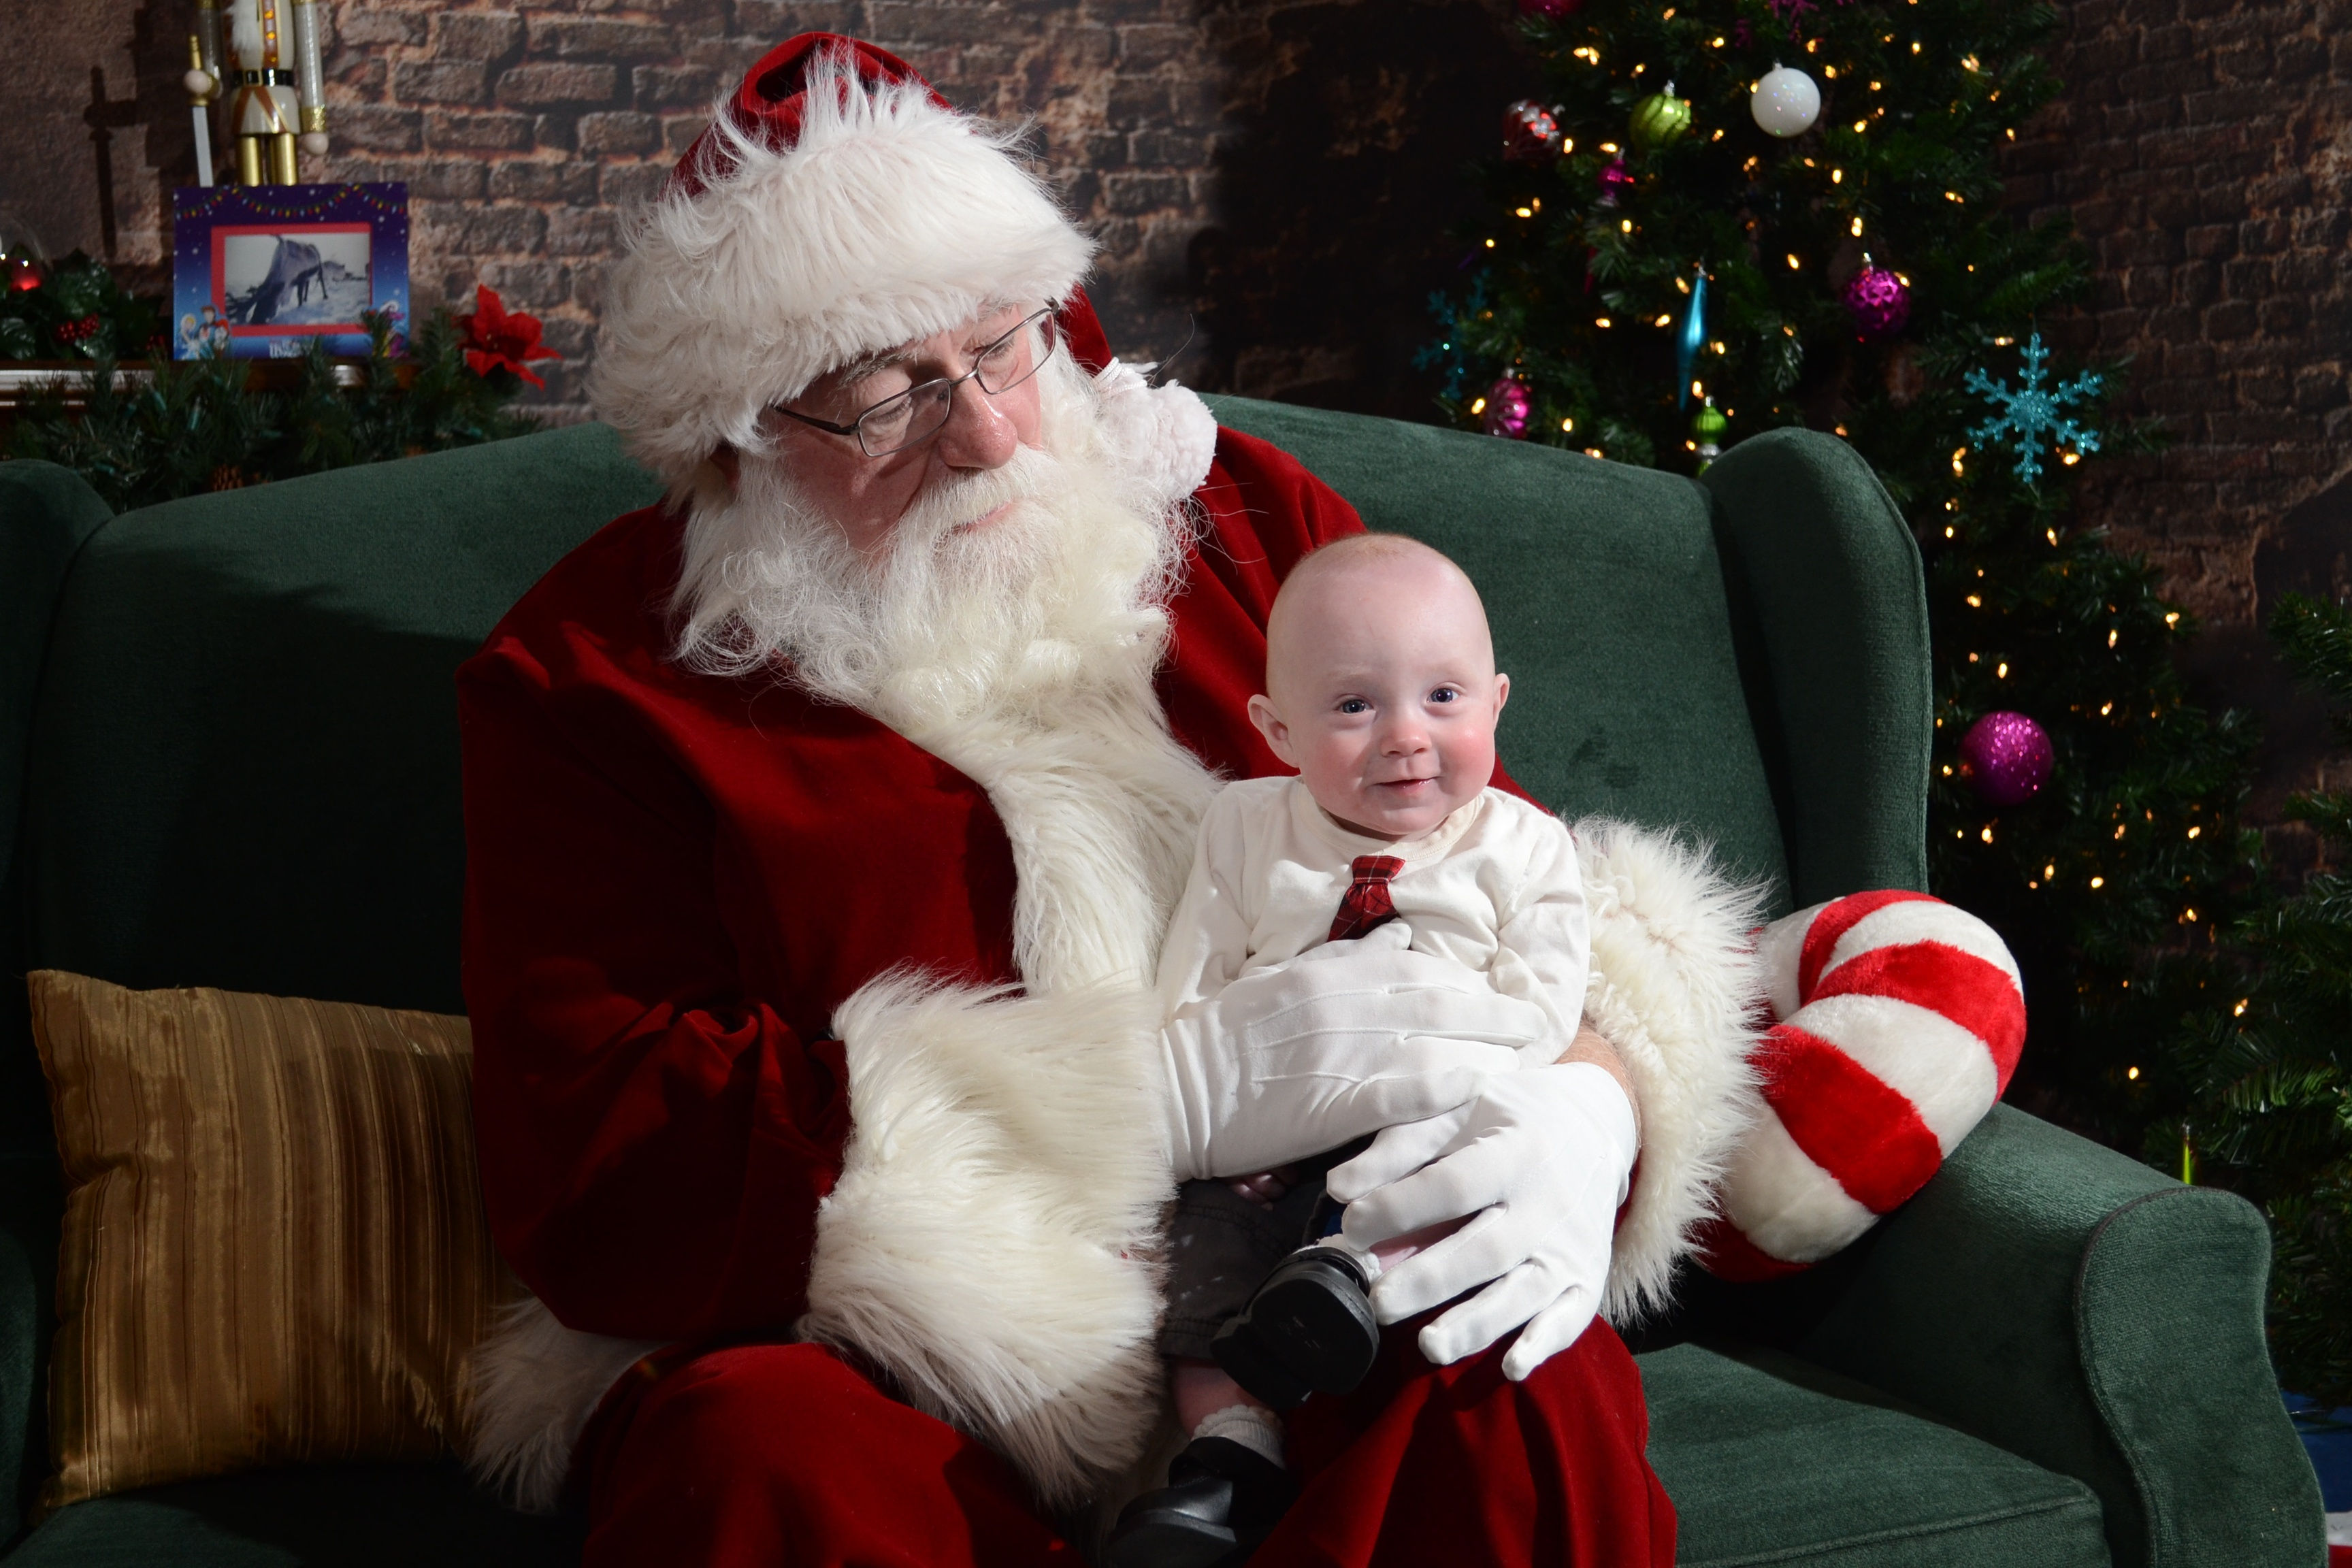 Santa holding baby on his lap